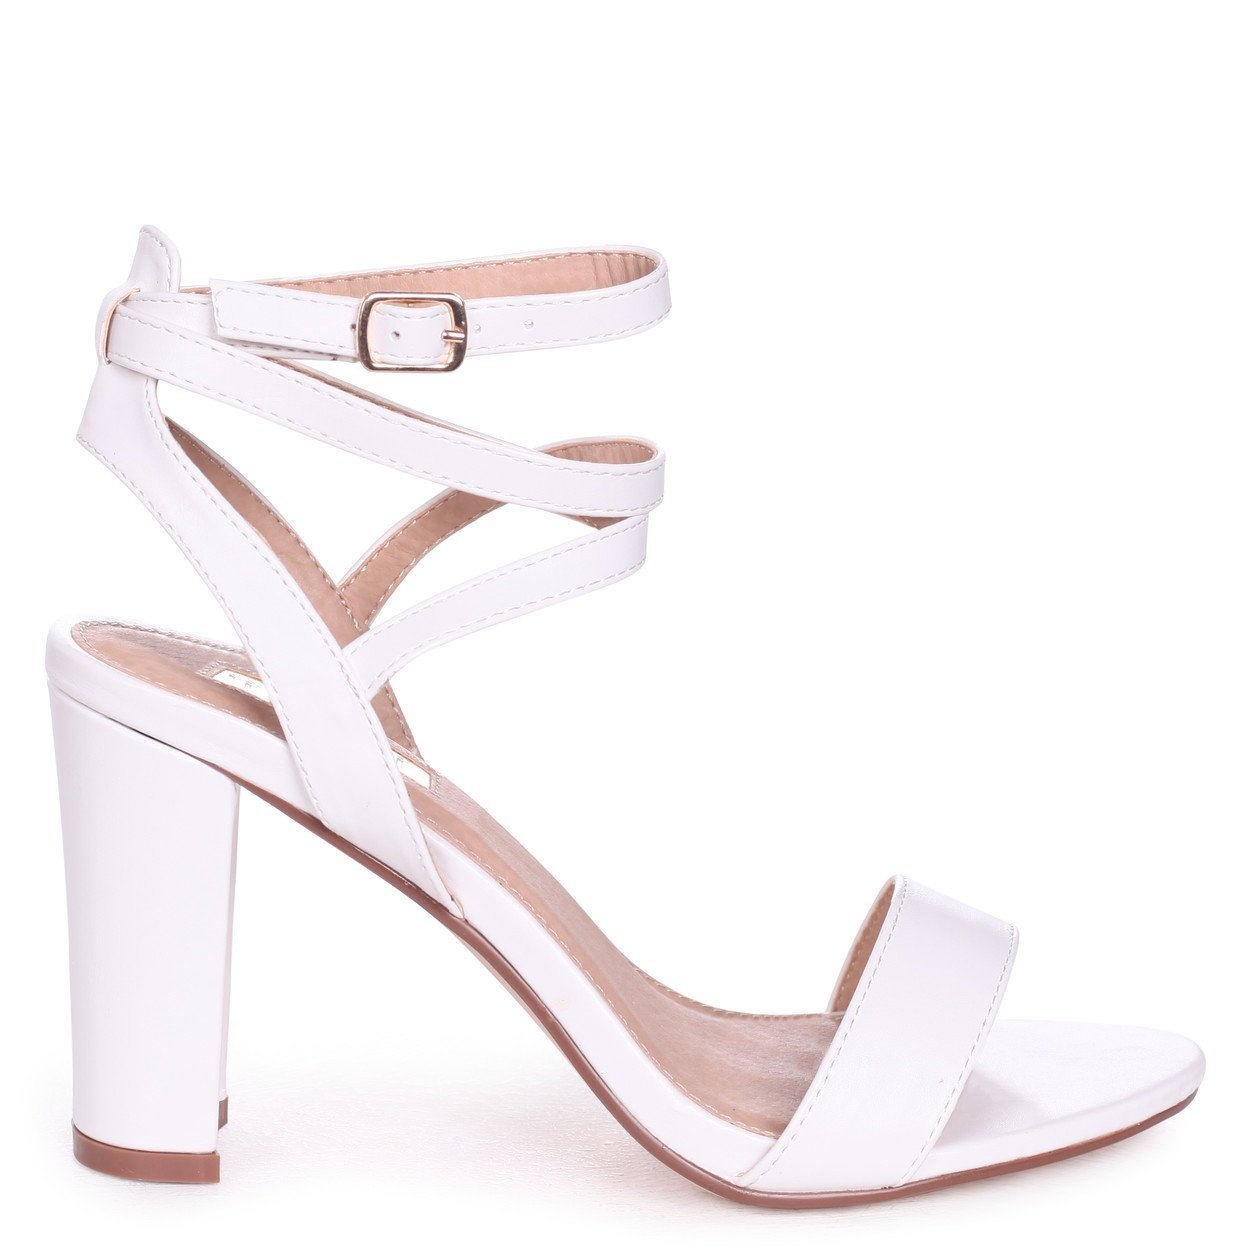 d63f566c5d Linzi Danni - White Nappa Block Heeled Sandal with Cross Over Ankle Strap:  Amazon.co.uk: Shoes & Bags